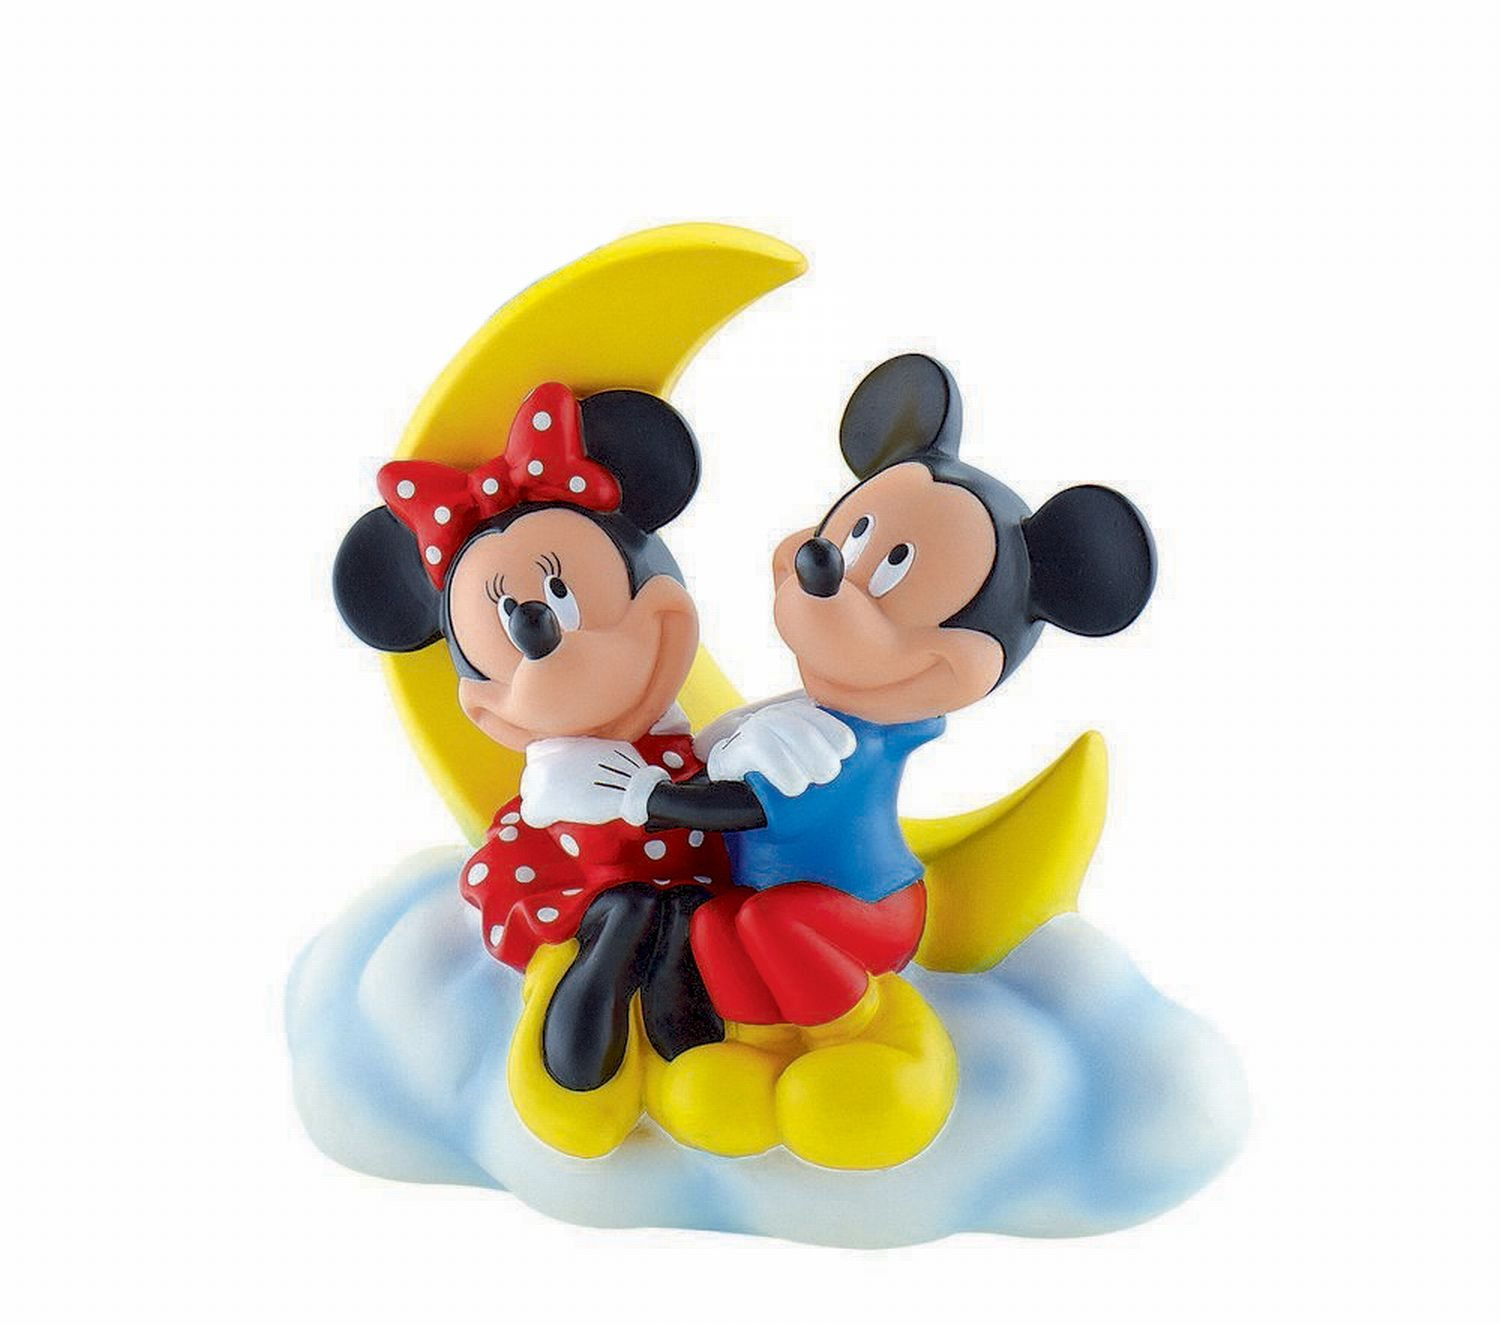 Bullyland - B15214 - Tirelire Mickey Et Minnie - La Maison de Mickey Disney product image